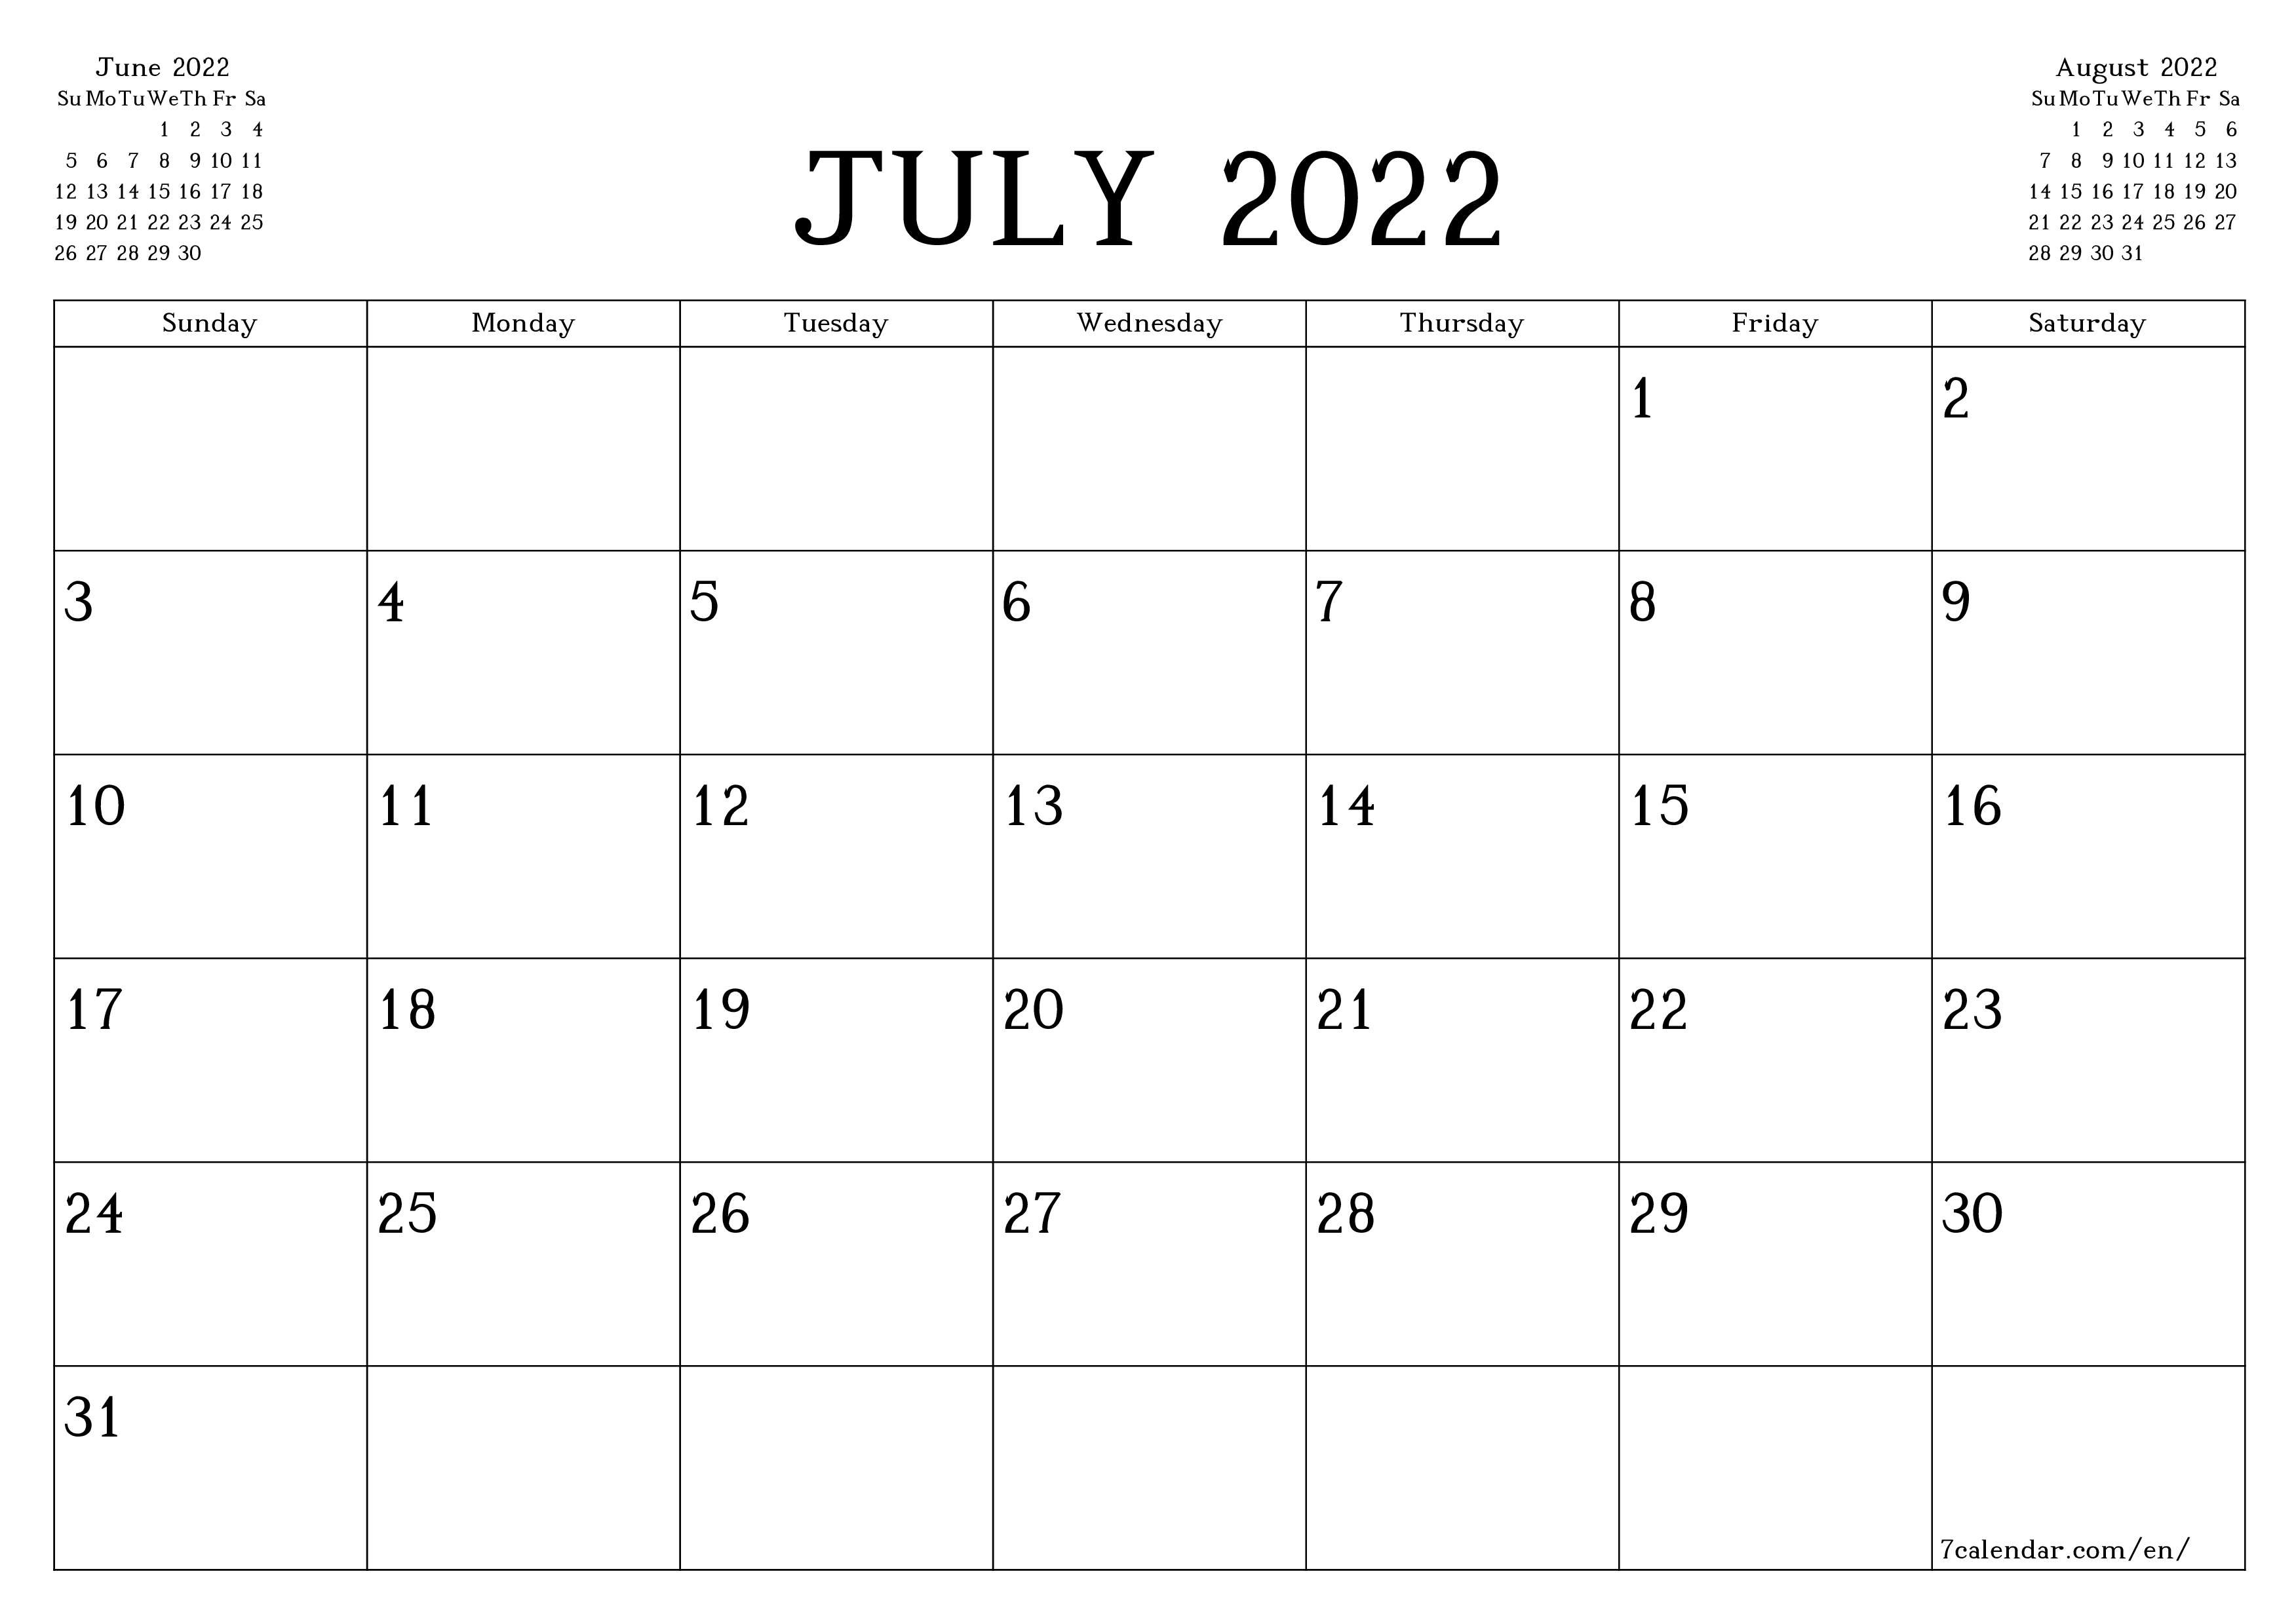 Blank monthly calendar planner for month July 2022 with notes save and print to PDF  - 7calendar.com